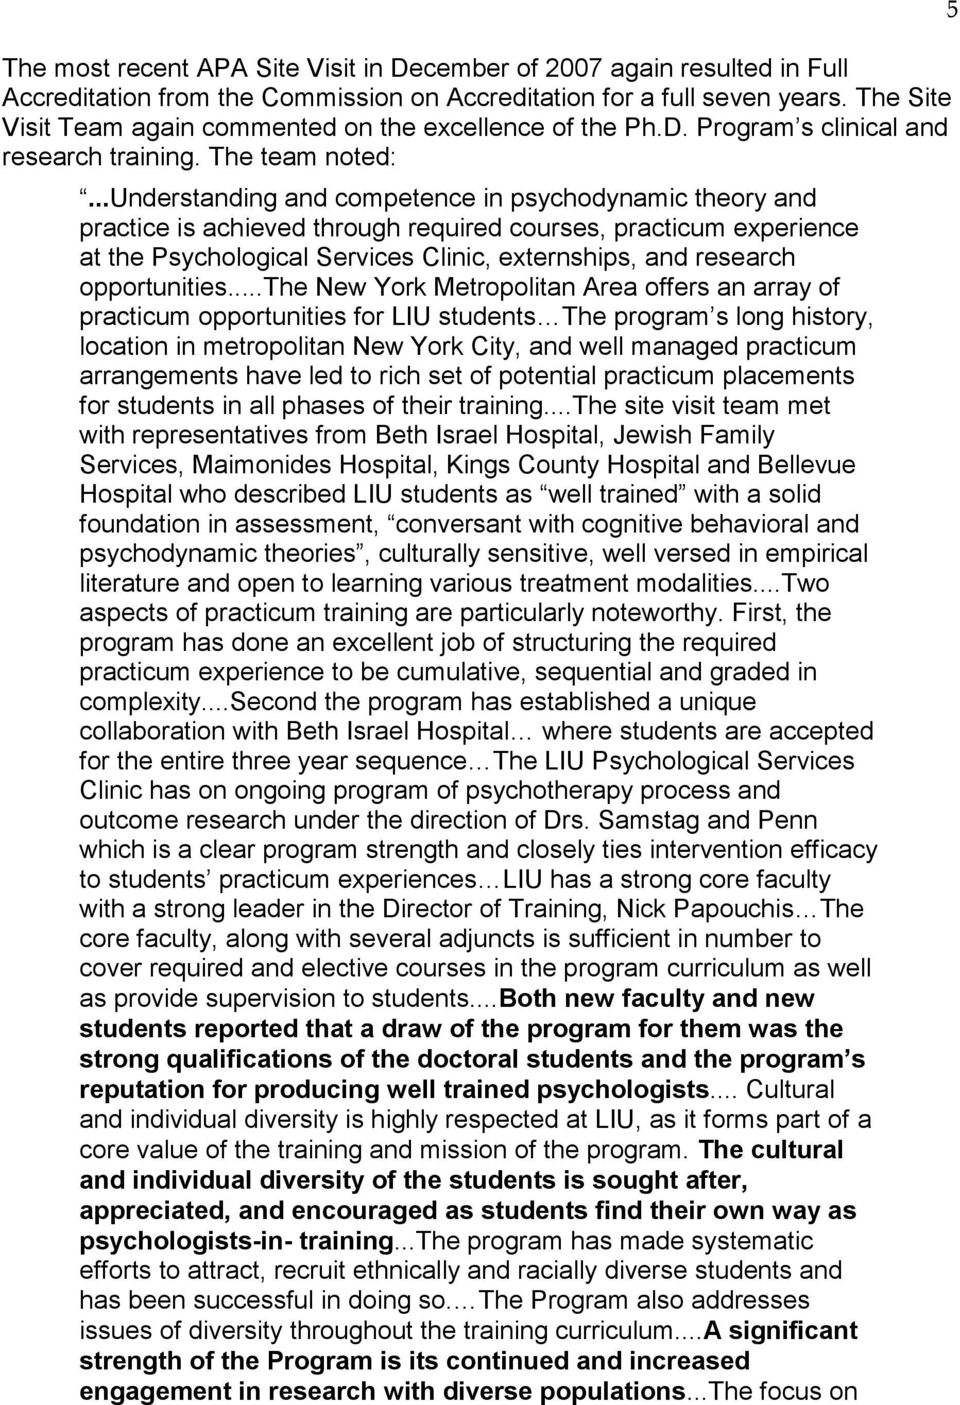 ..understanding and competence in psychodynamic theory and practice is achieved through required courses, practicum experience at the Psychological Services Clinic, externships, and research